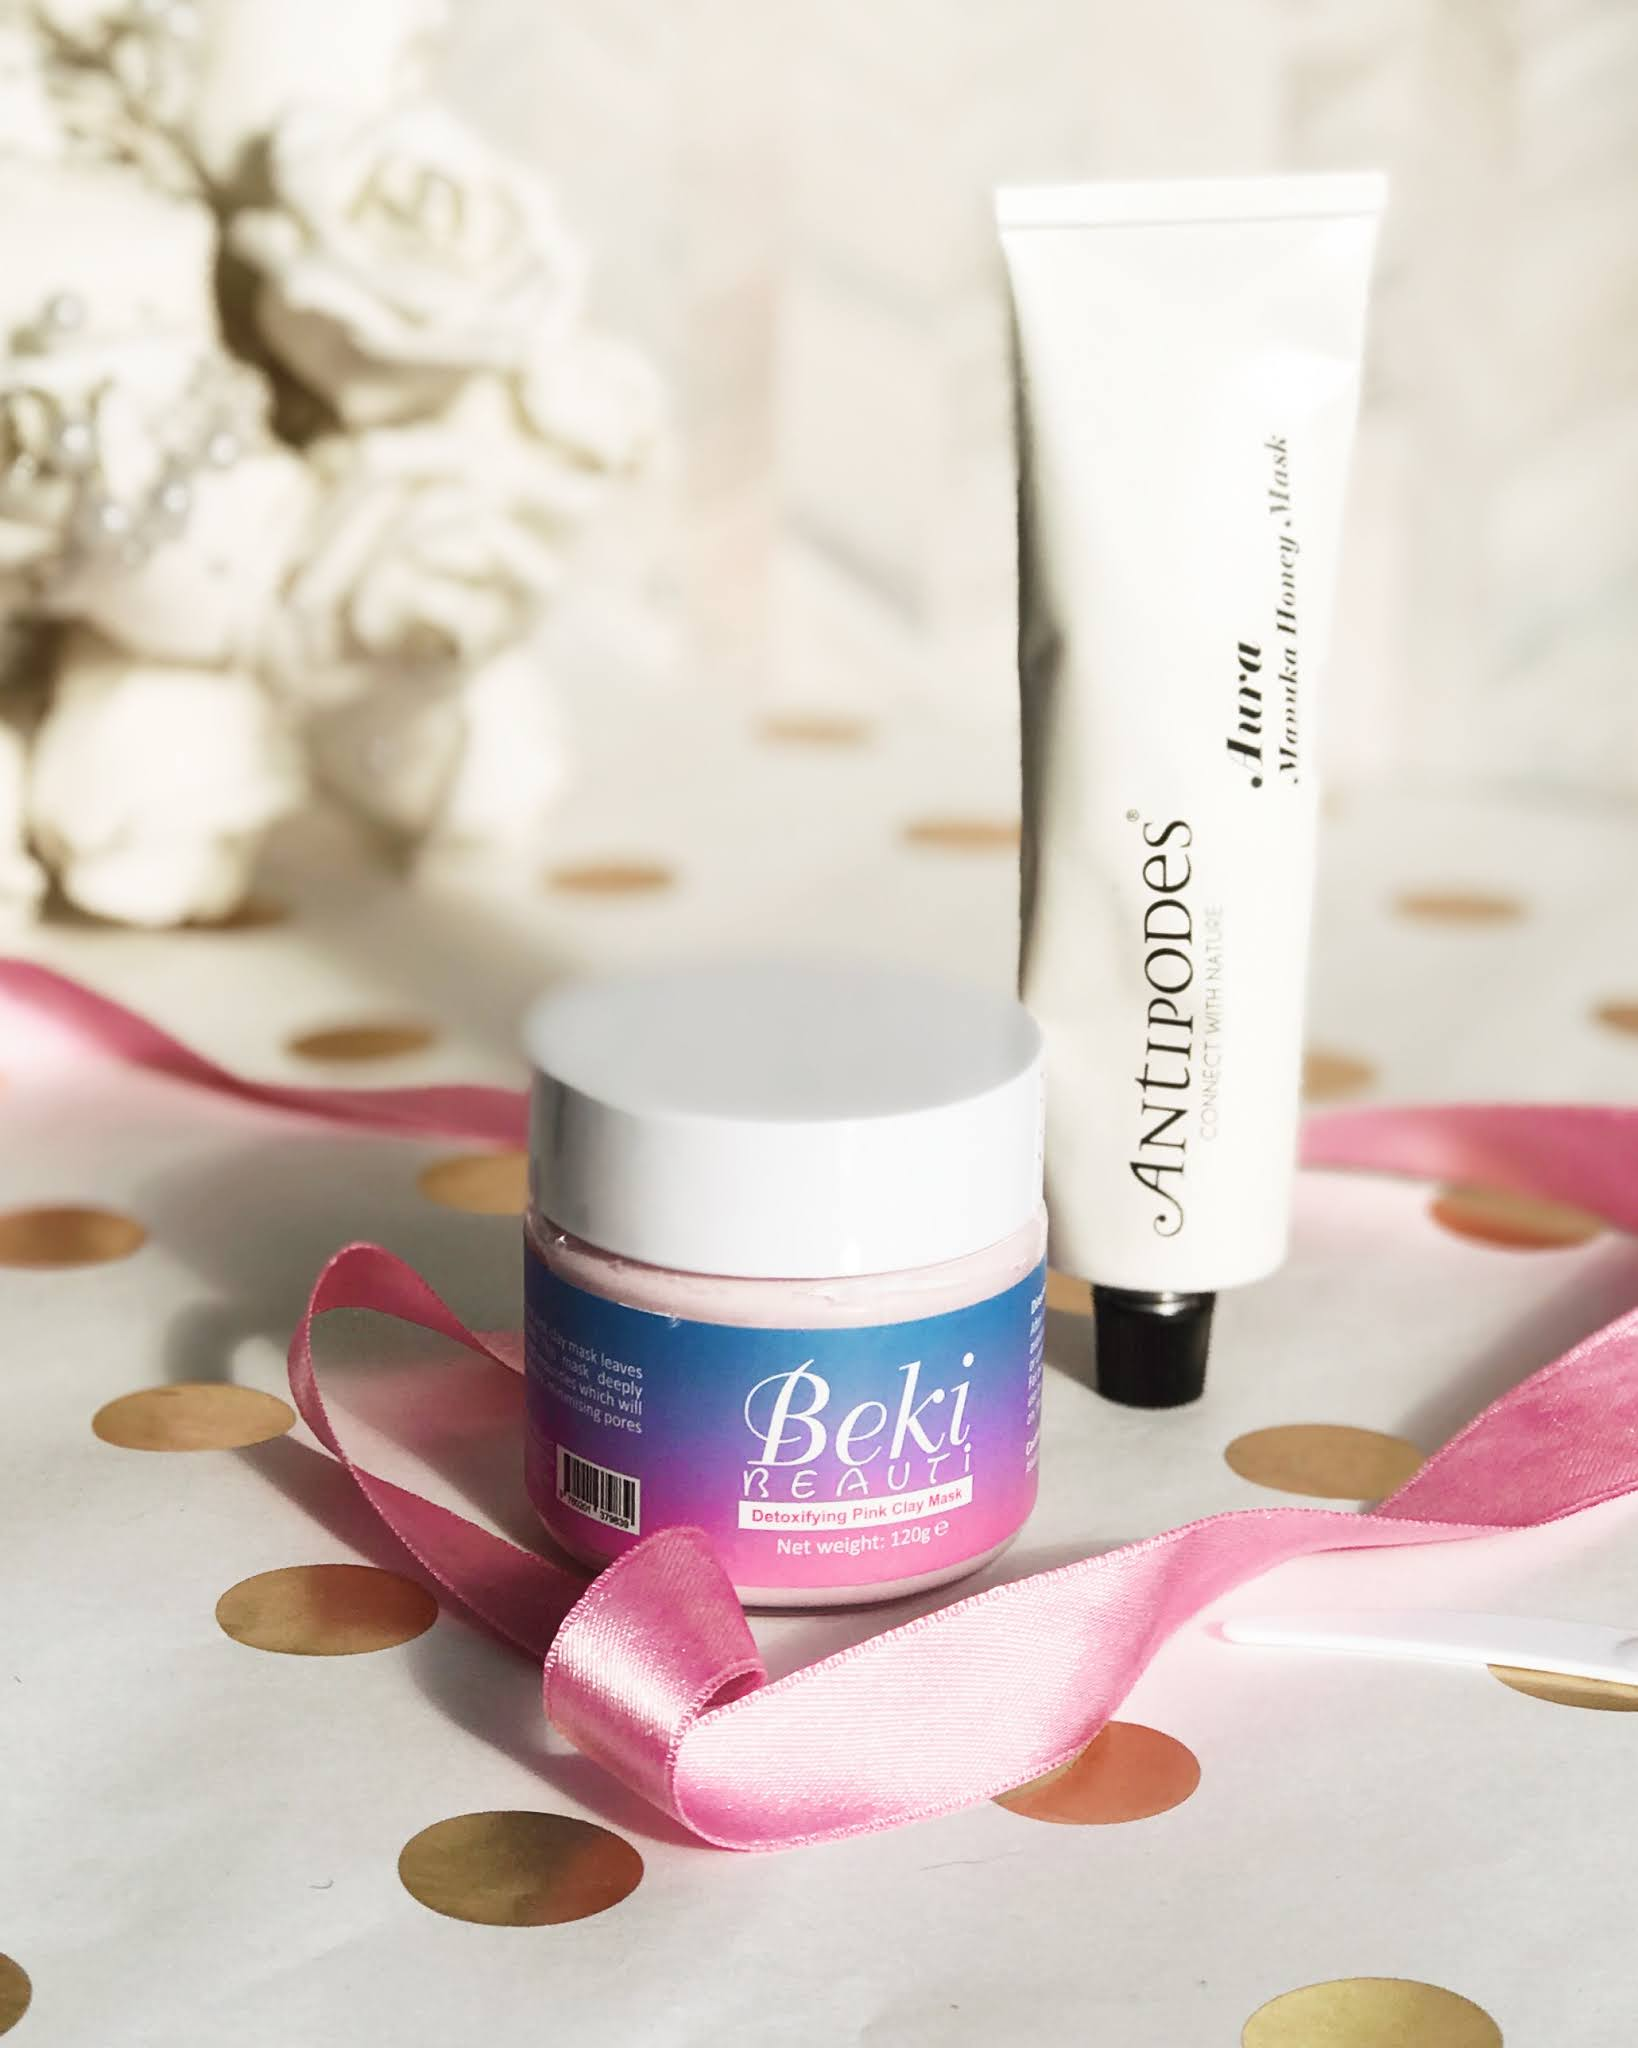 Beki Beauti mask and Antipodes Aura mask